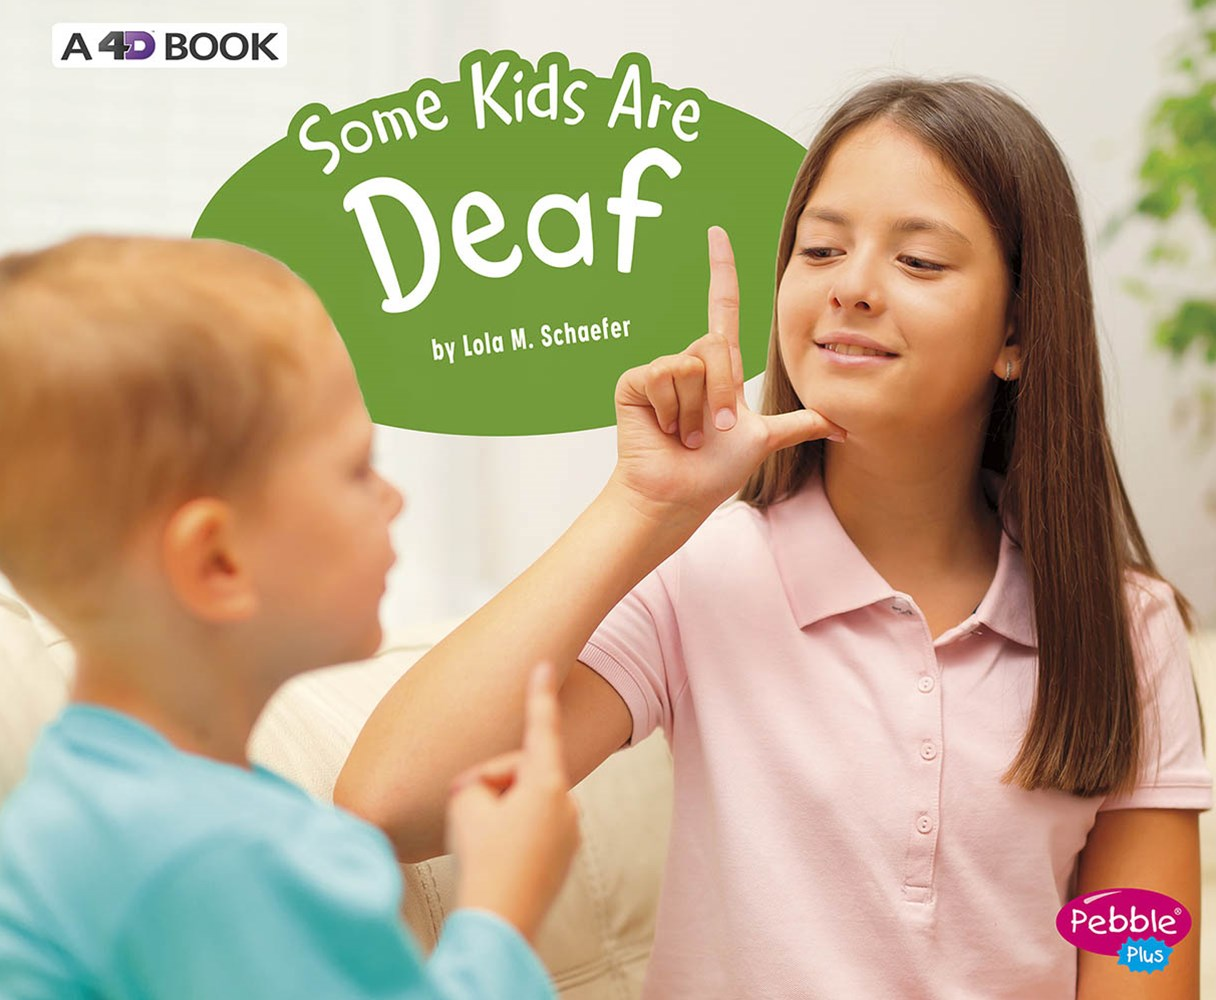 Understanding Differences: Some Kids Are Deaf: A 4D Book